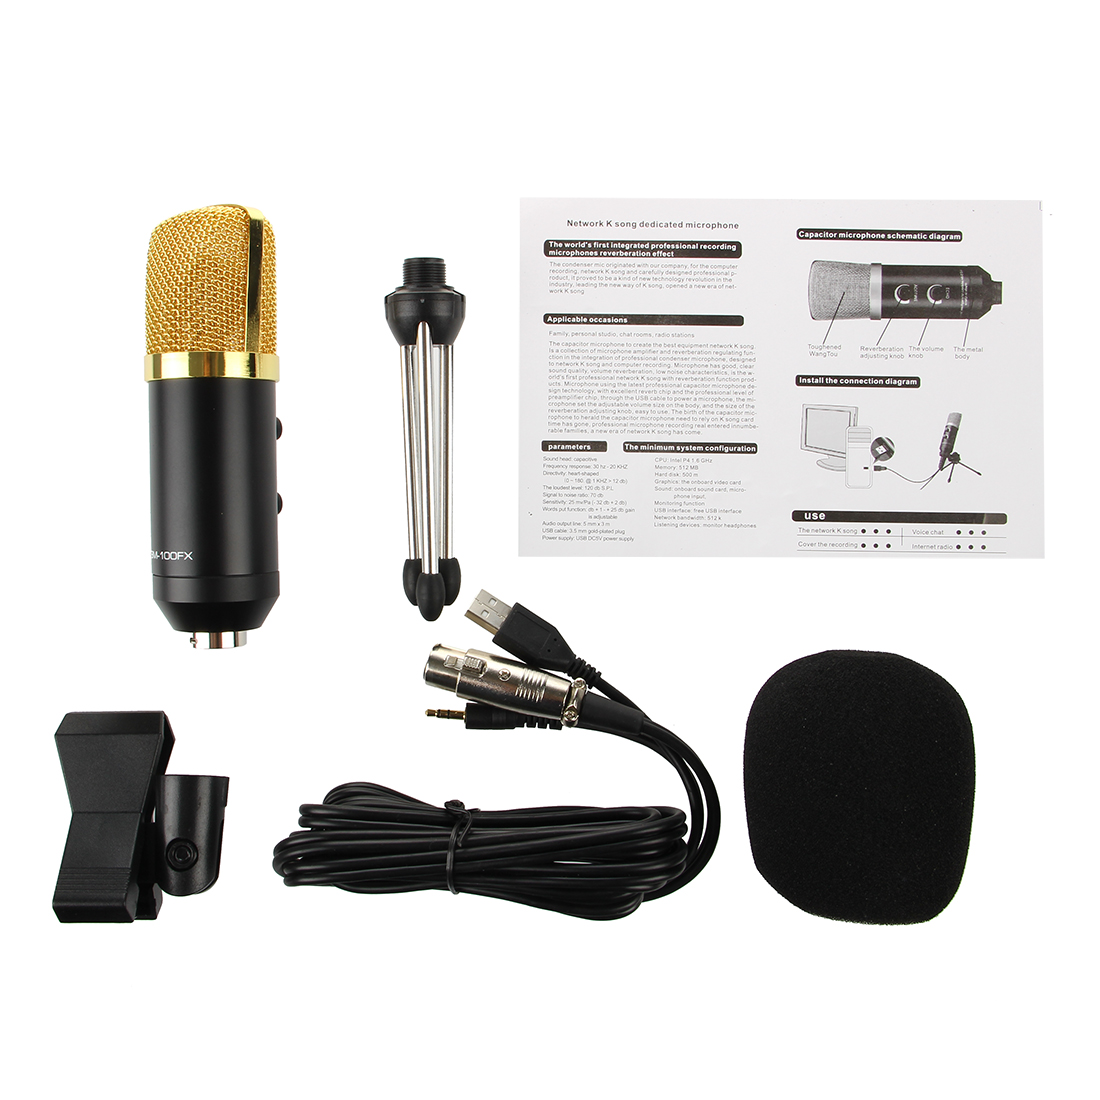 Usb Studio Condenser Recording Microphone With Sponge Sets Audio Circuit Diagram 1x 25m Cable Notelight Shooting And Different Displays May Cause The Color Of Item In Picture A Little From Real Thing